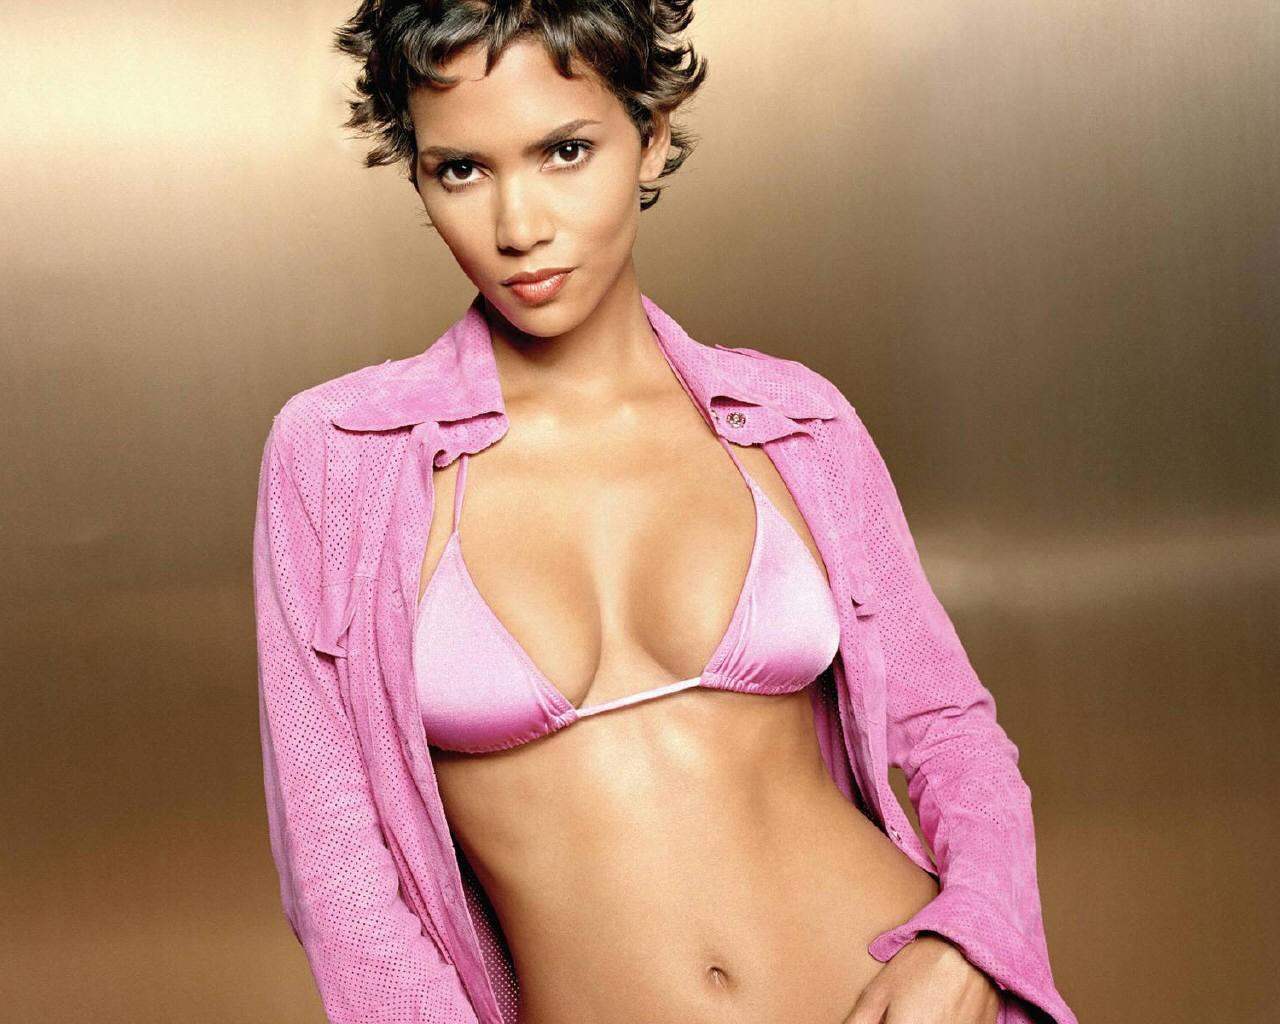 Halle berry very sexy that was